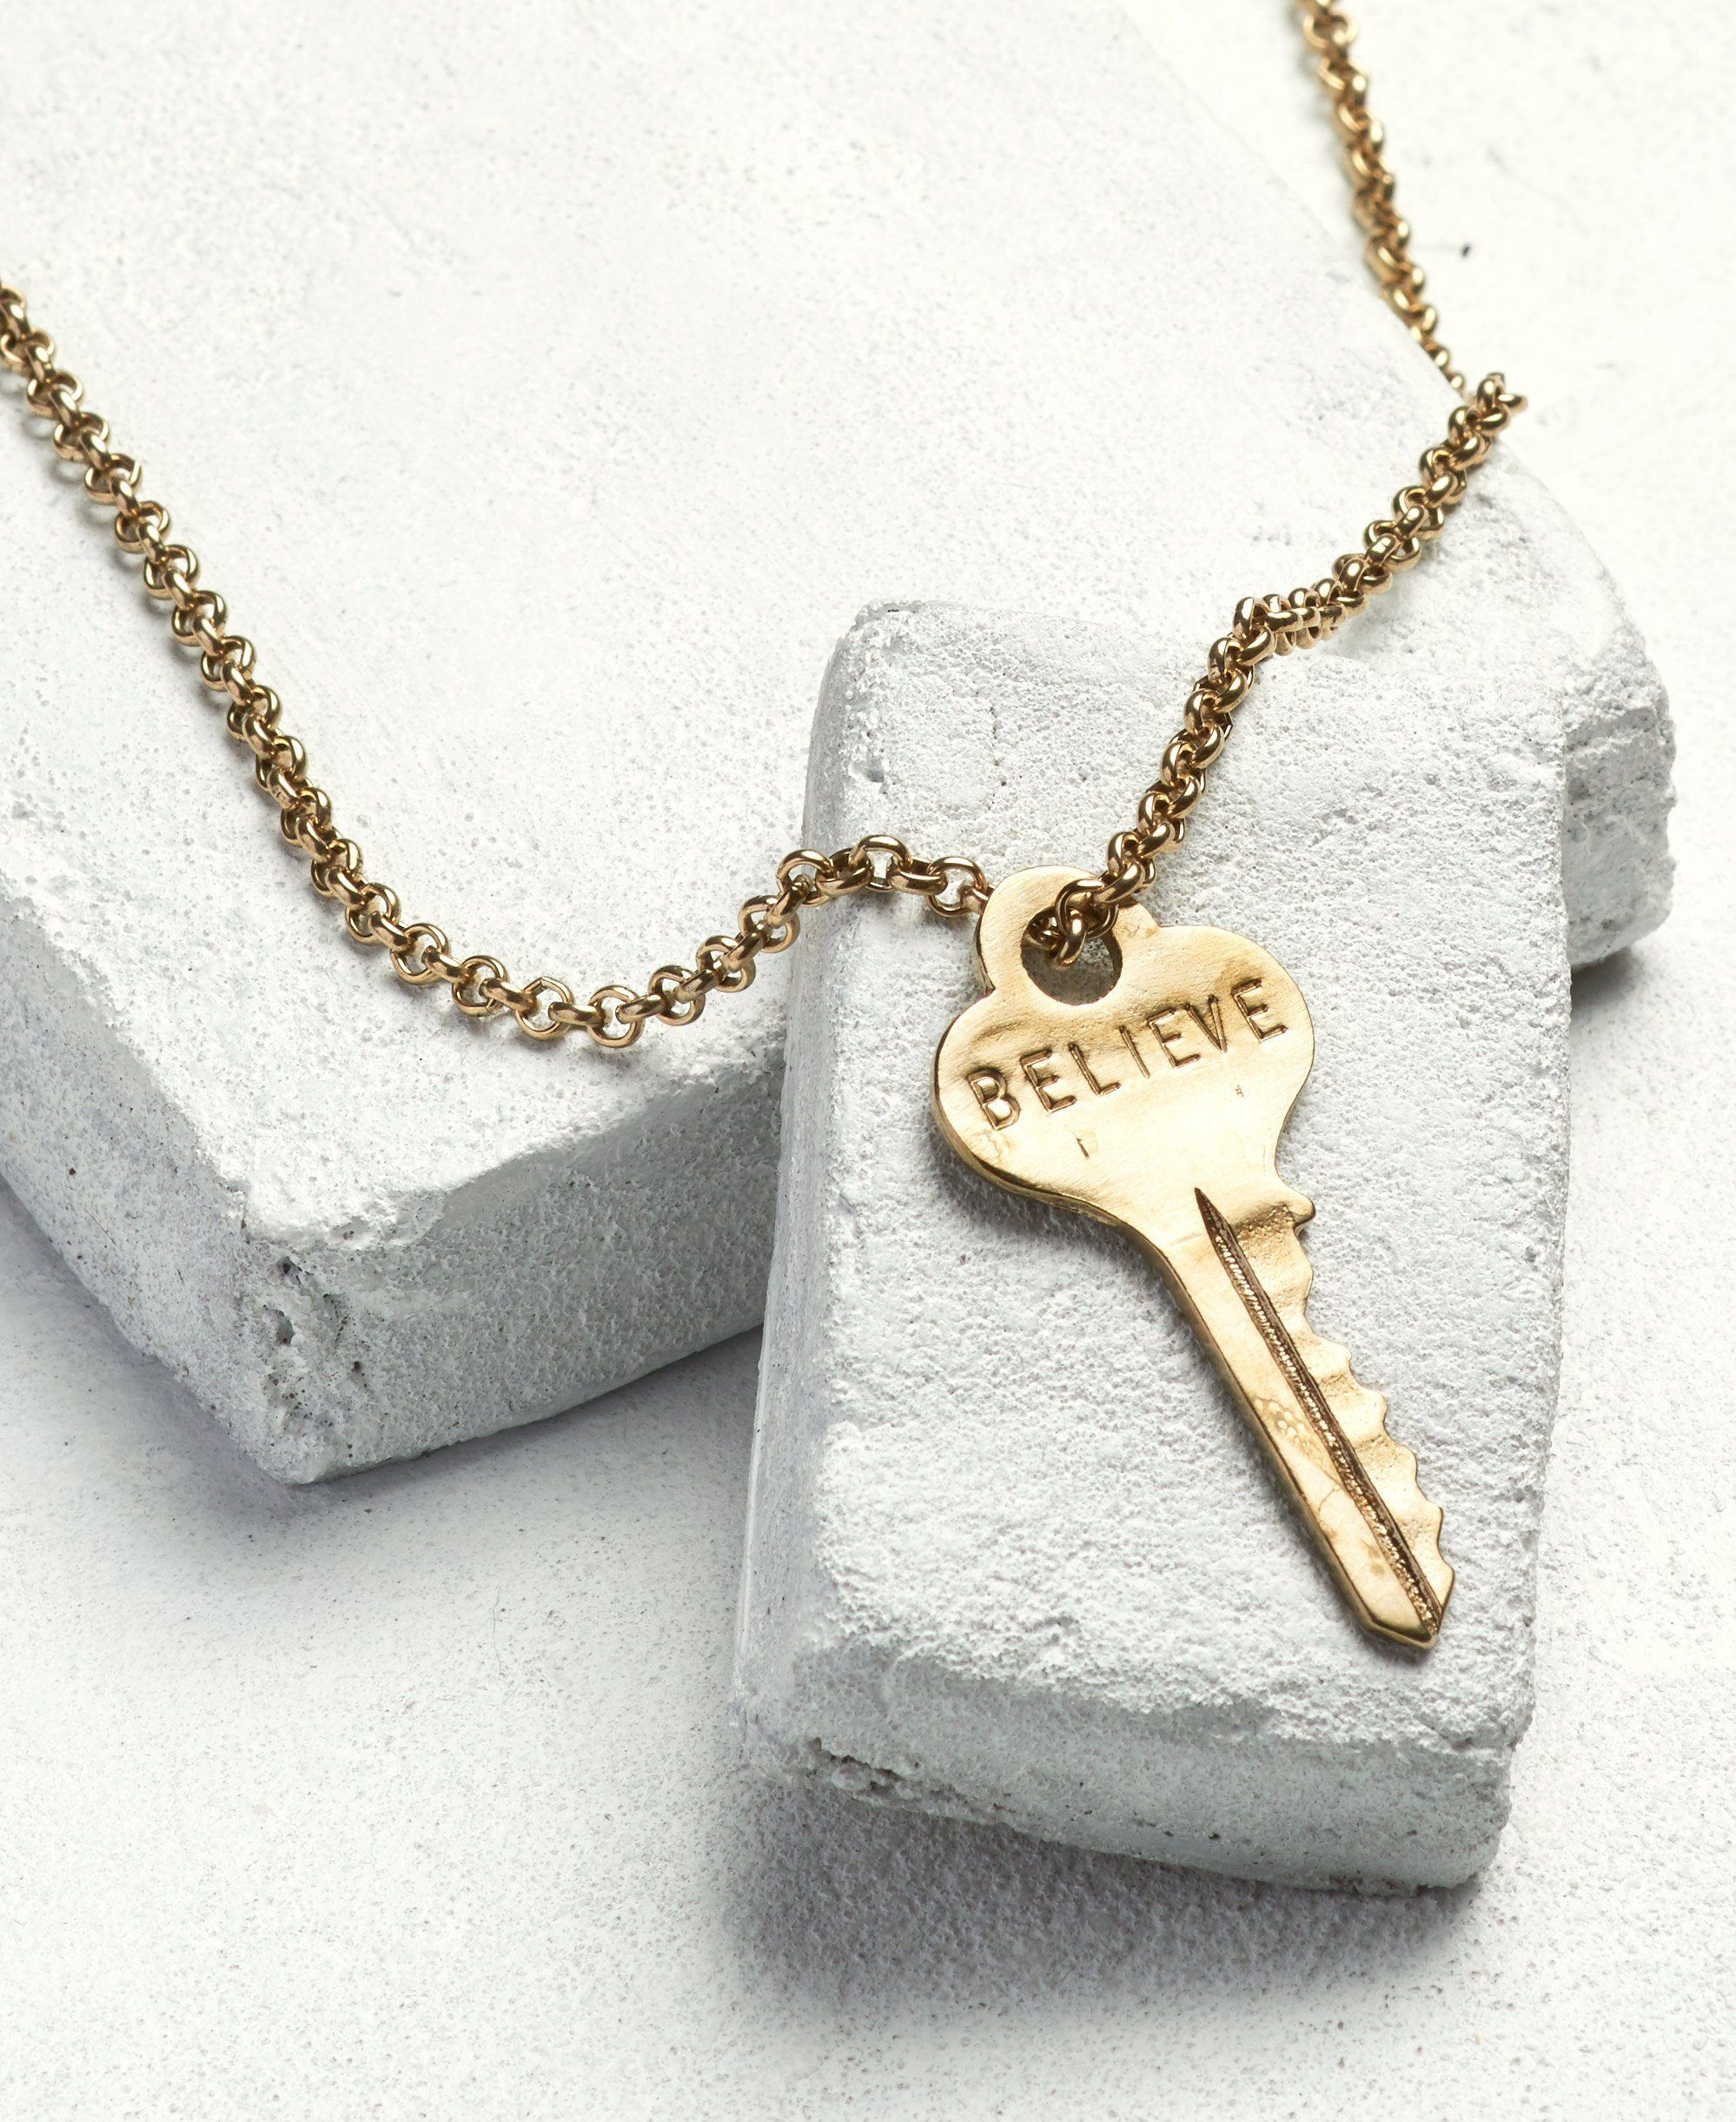 Classic Key Necklace Necklaces The Giving Keys BELIEVE Antique Gold